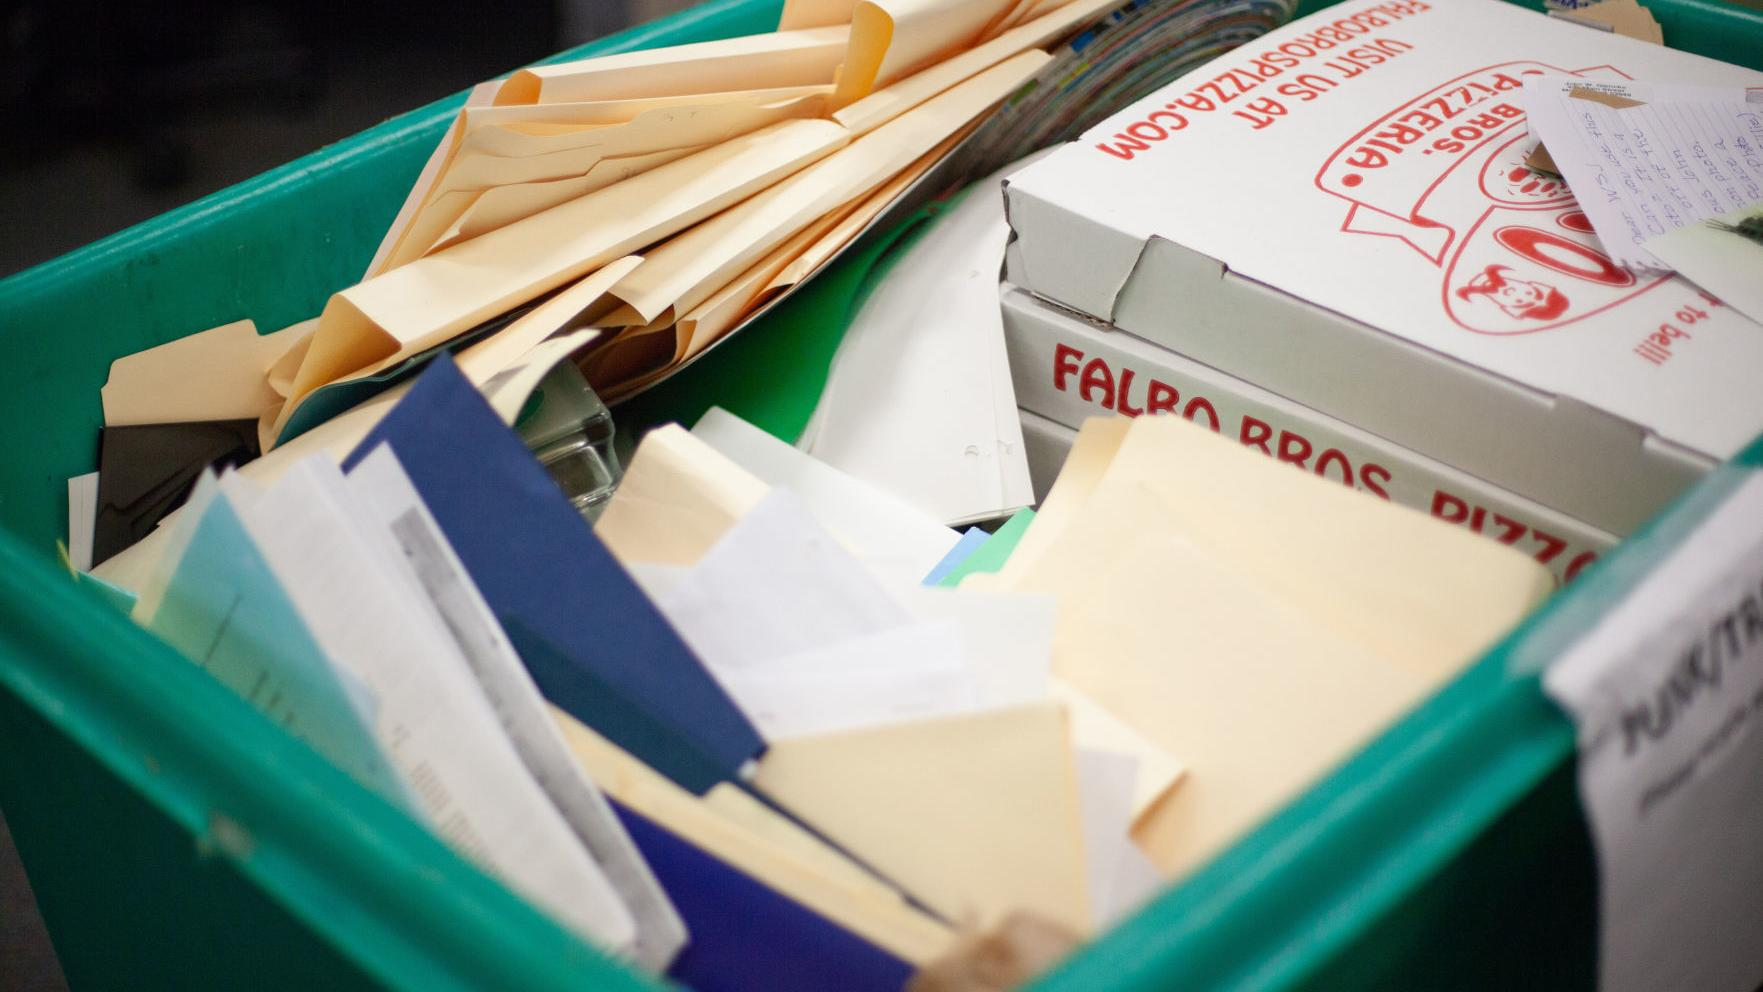 Just Ask Us: Do I have to remove staples and paper clips before recycling paper?